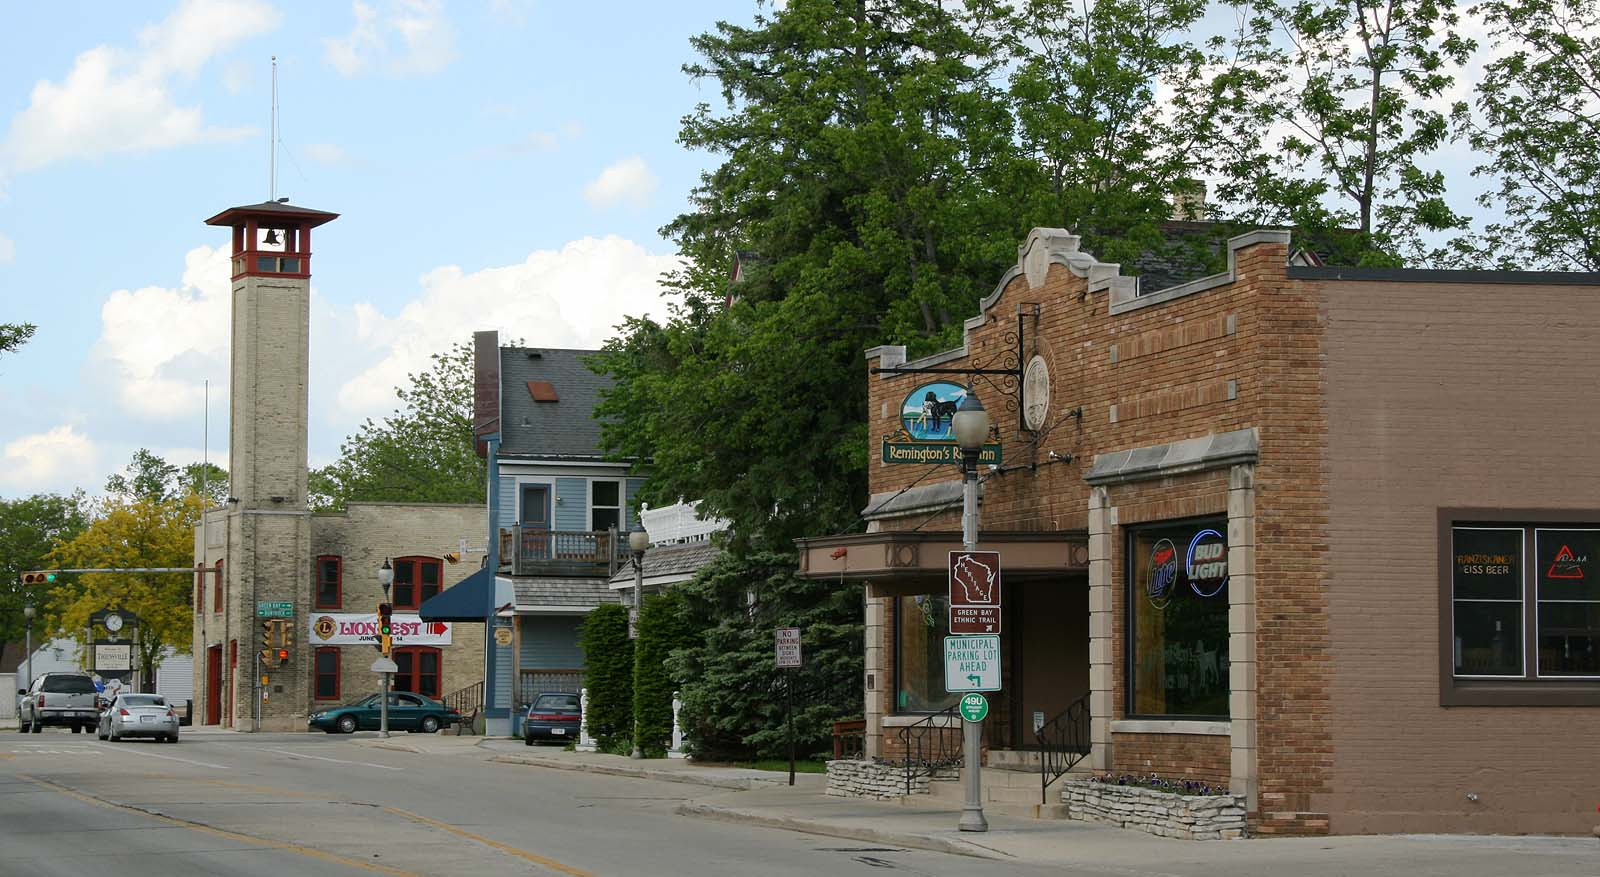 Thiensville's Main Street includes ten buildings that make up a Historic District on the National Register of Historic Places.